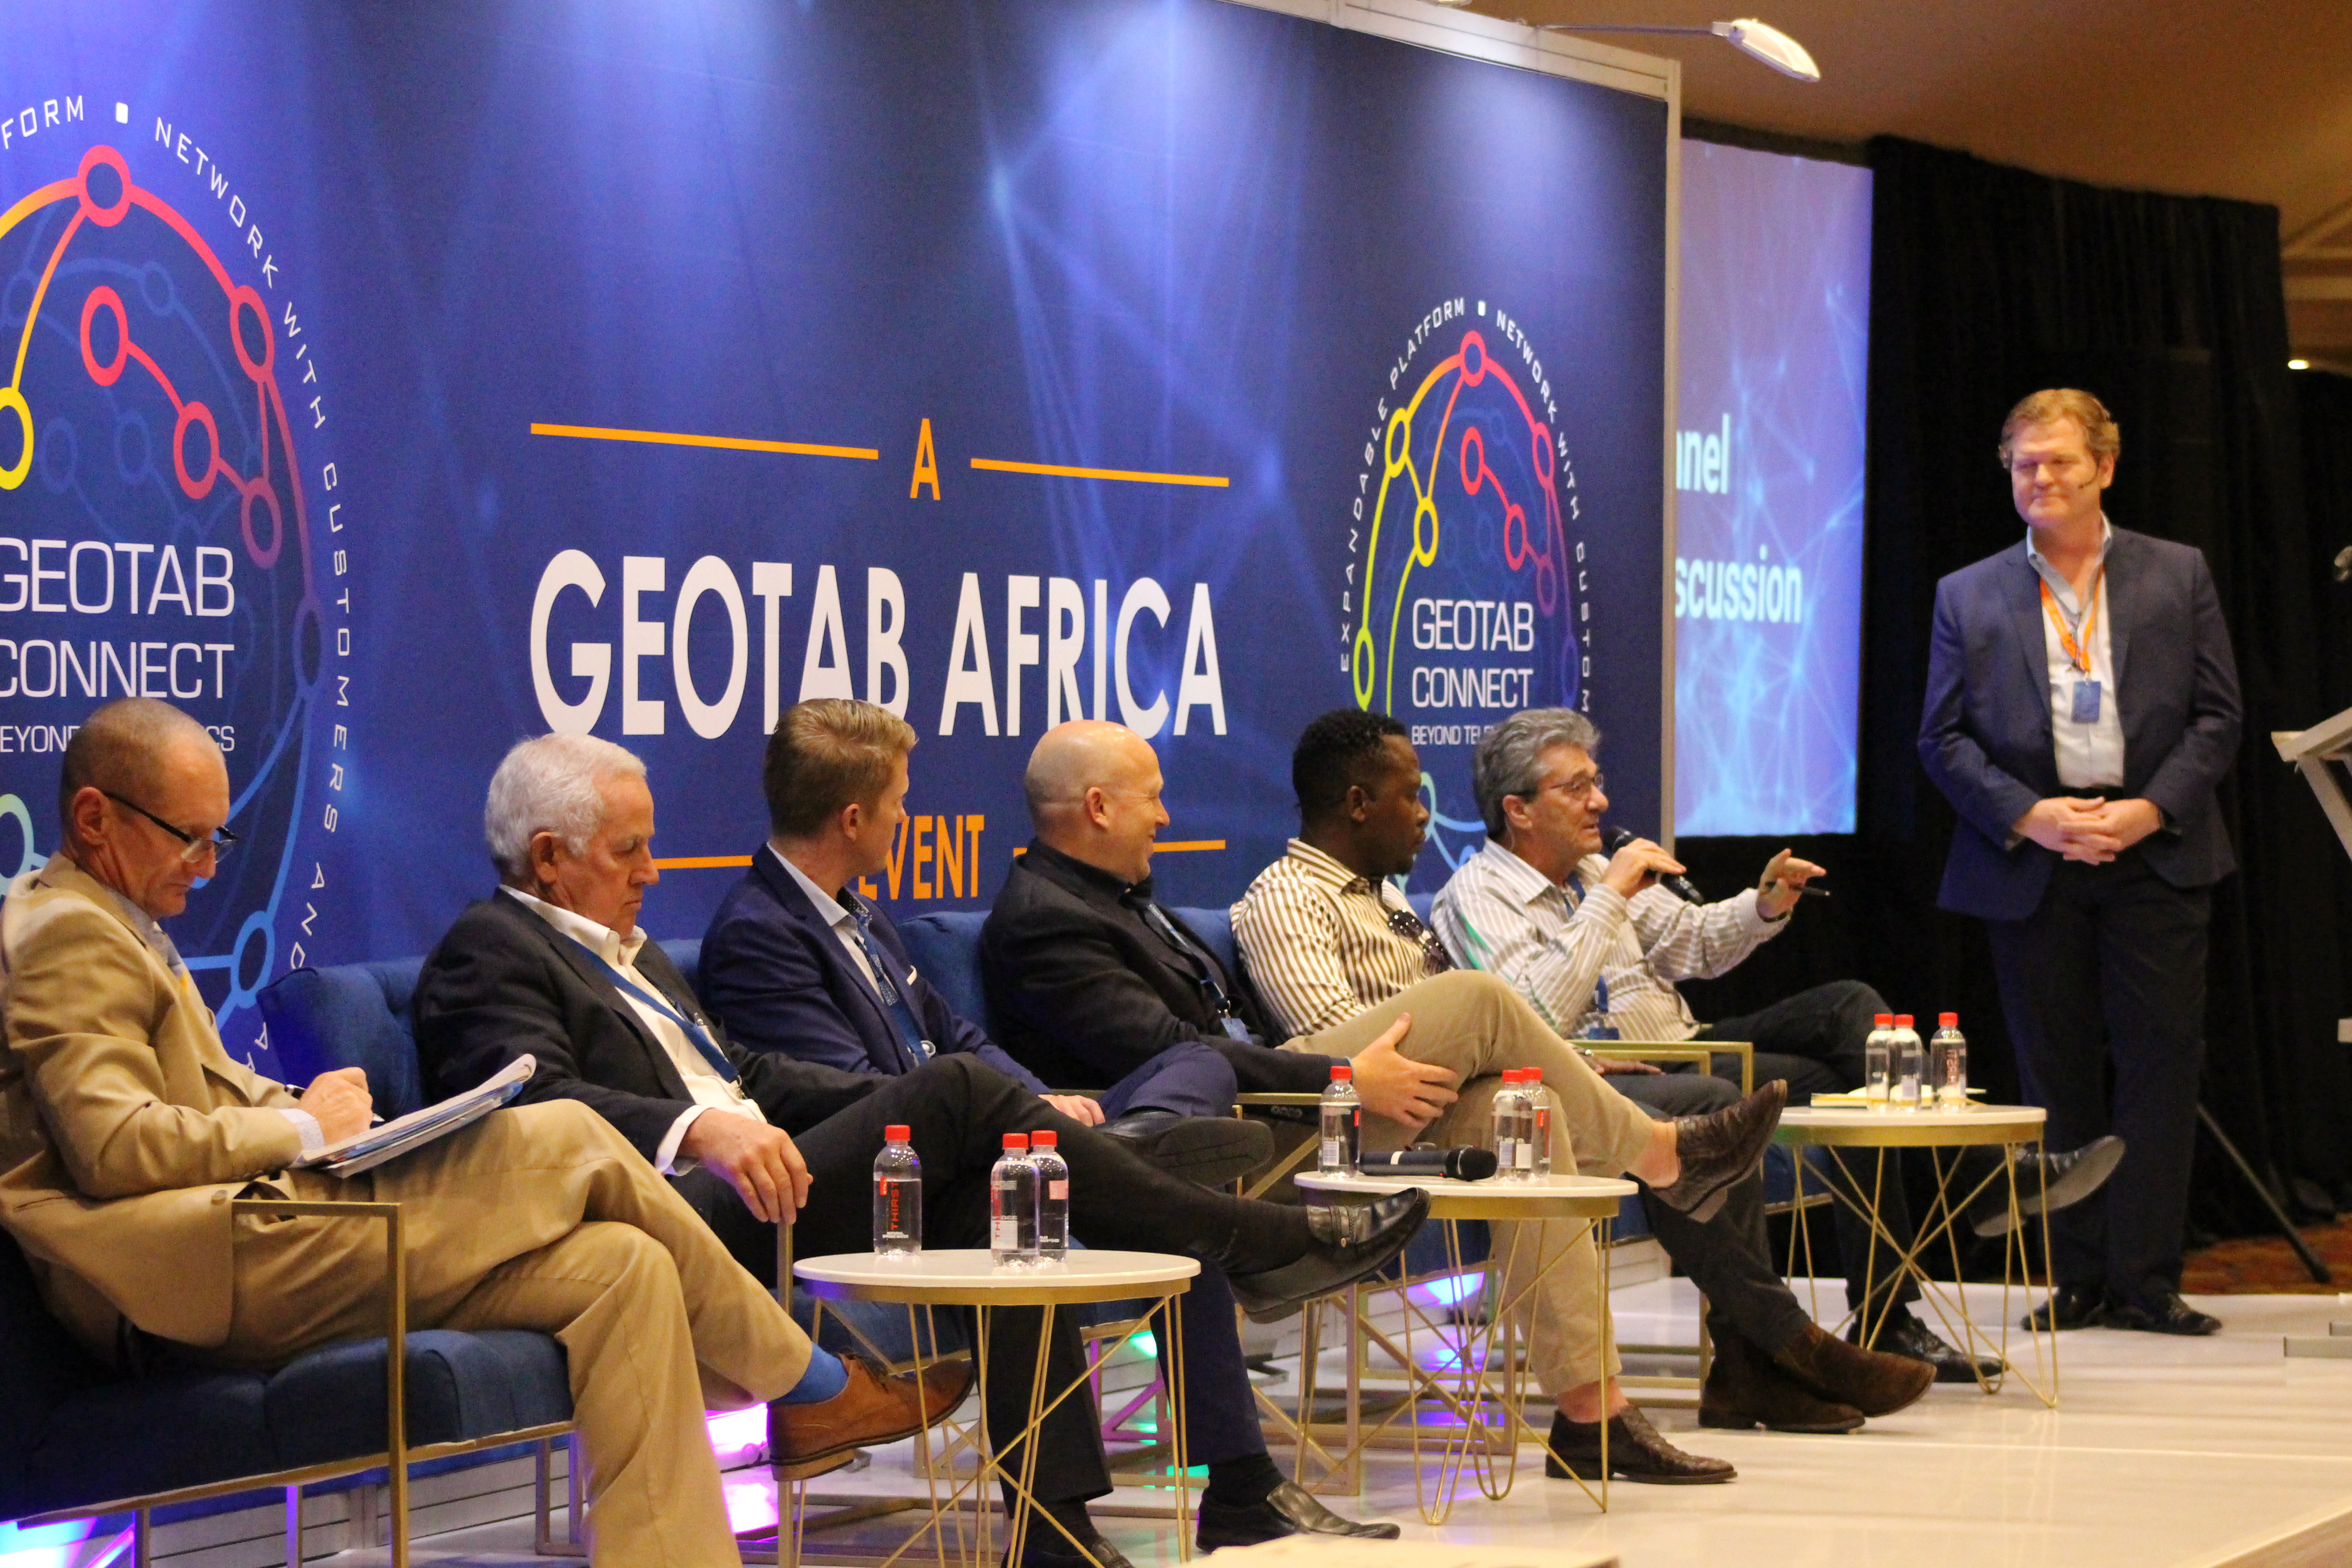 Geotab Africa Connect Advanced Telematics Conference